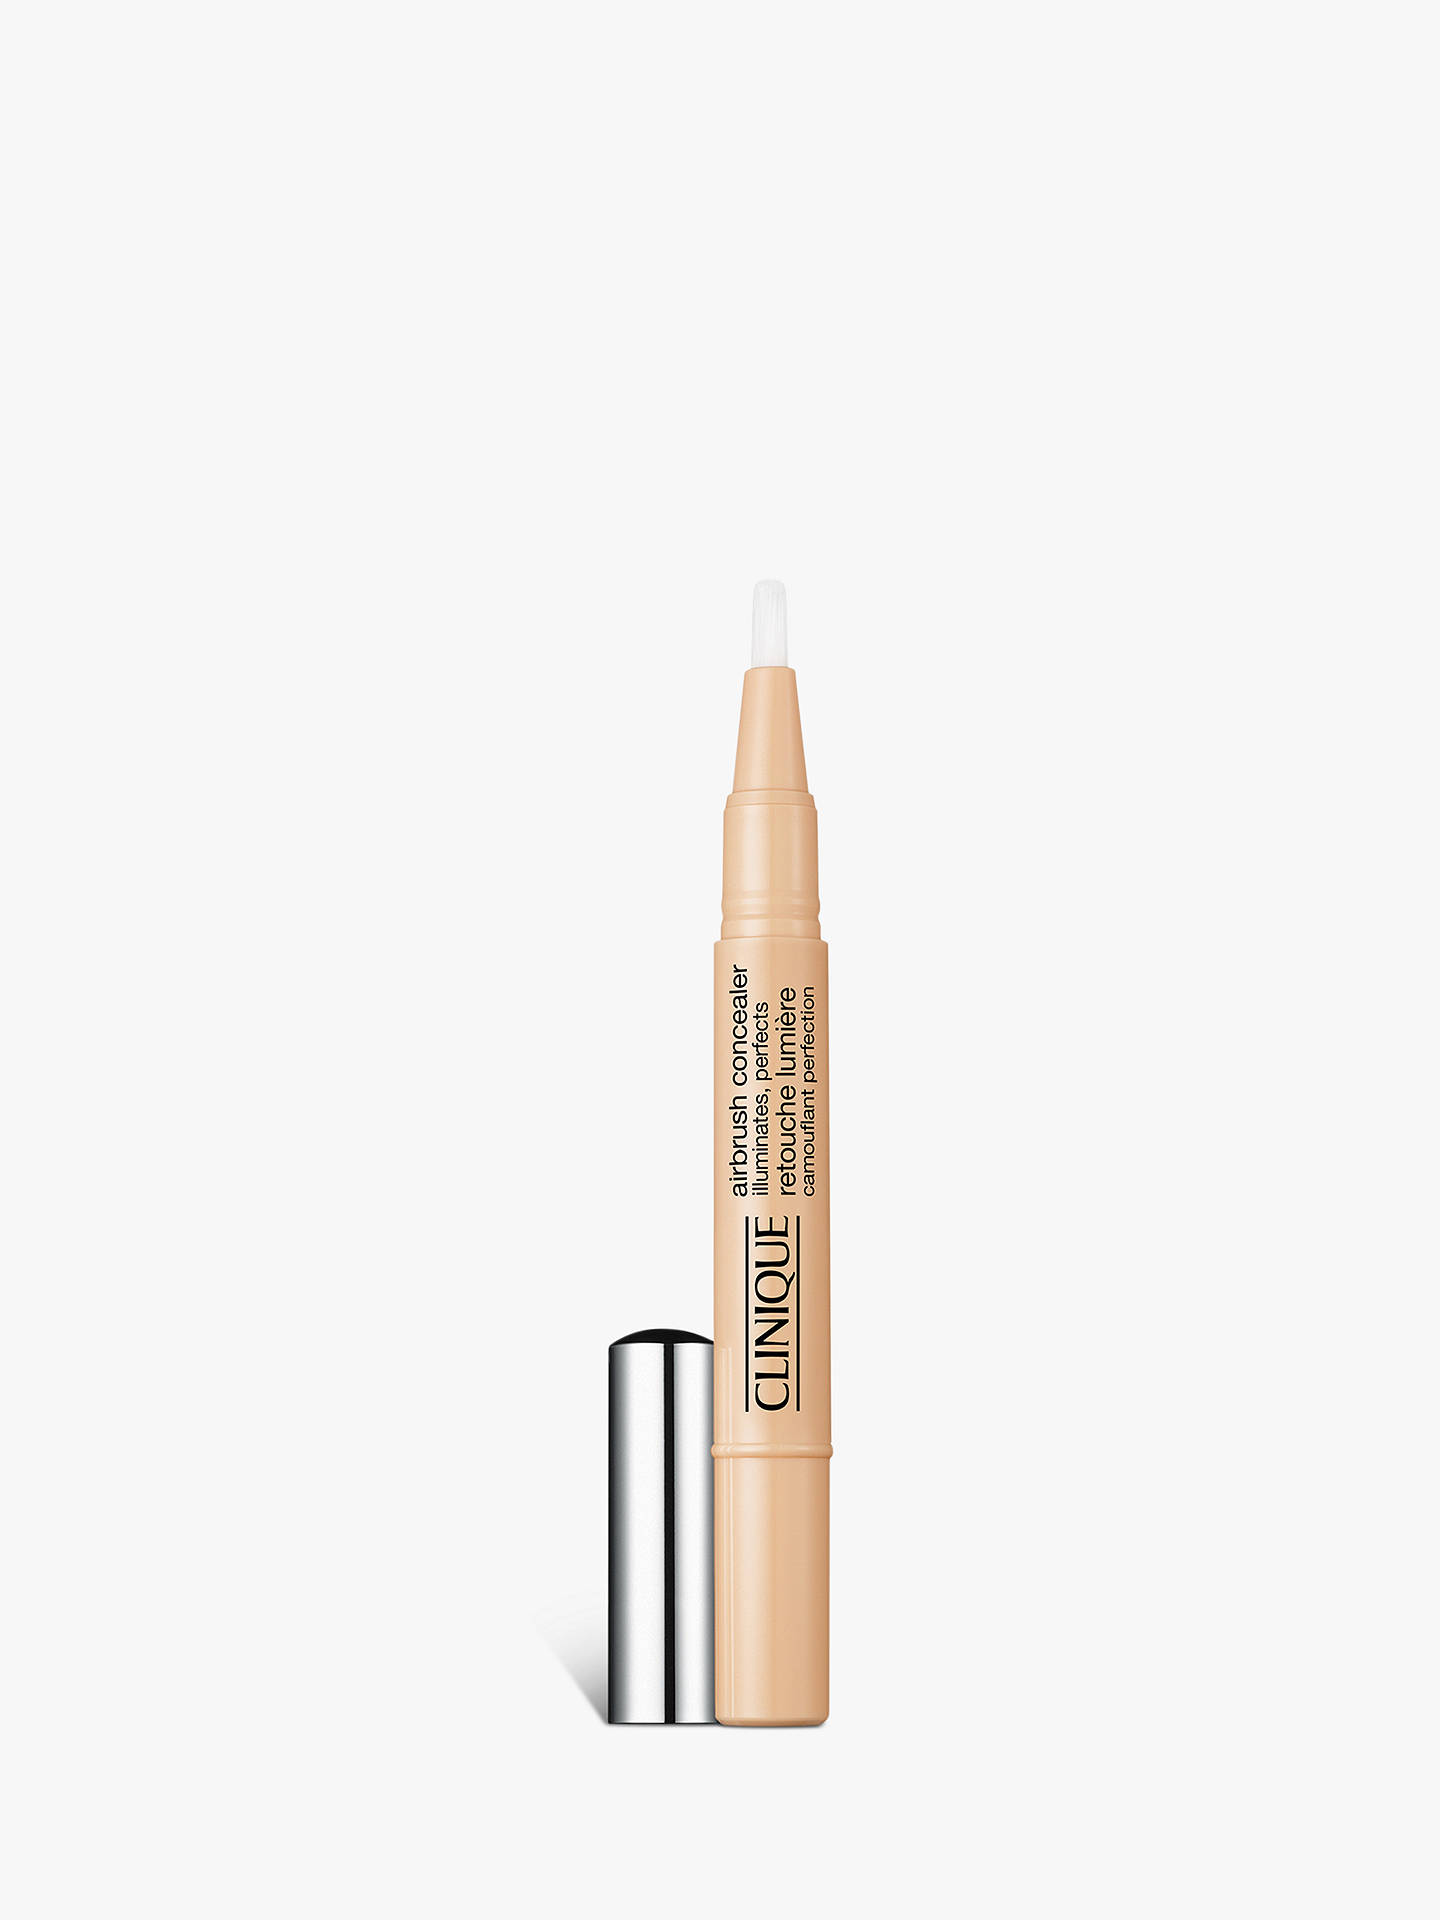 BuyClinique Airbrush Concealer - All Skin Types, 1.5ml, Fair Cream Online at johnlewis.com